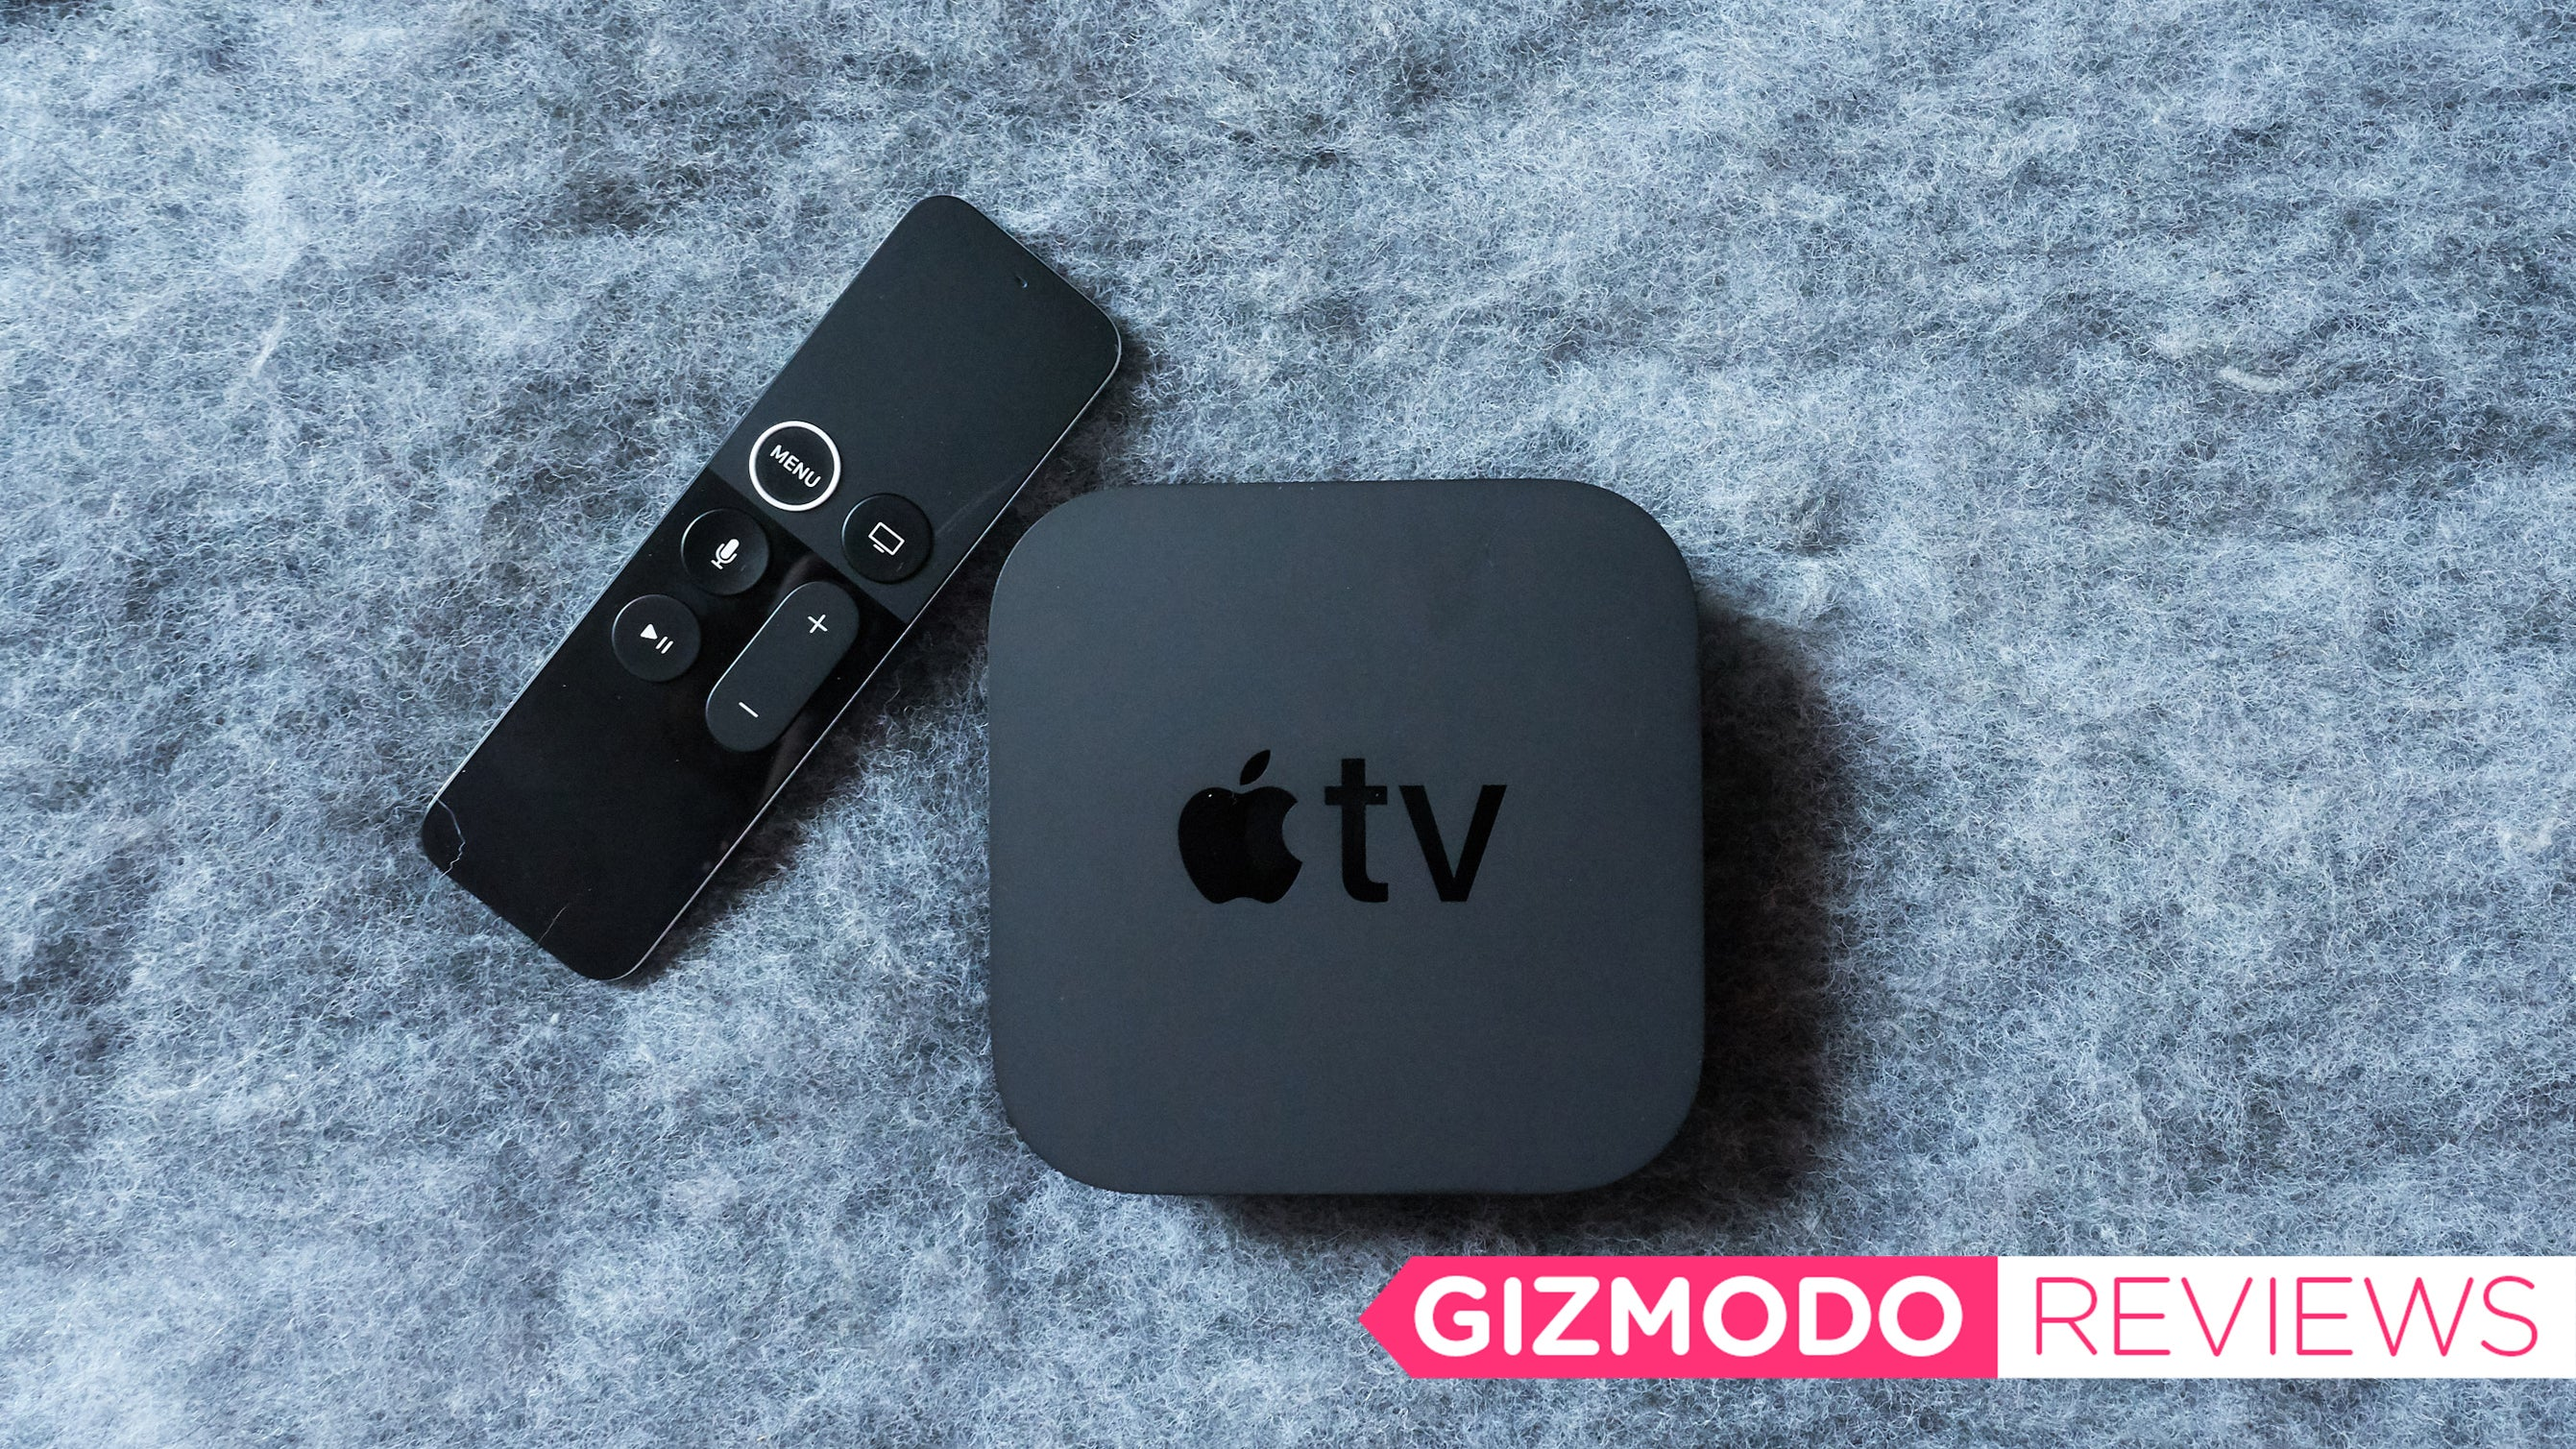 Apple TV 4K: The Gizmodo Review